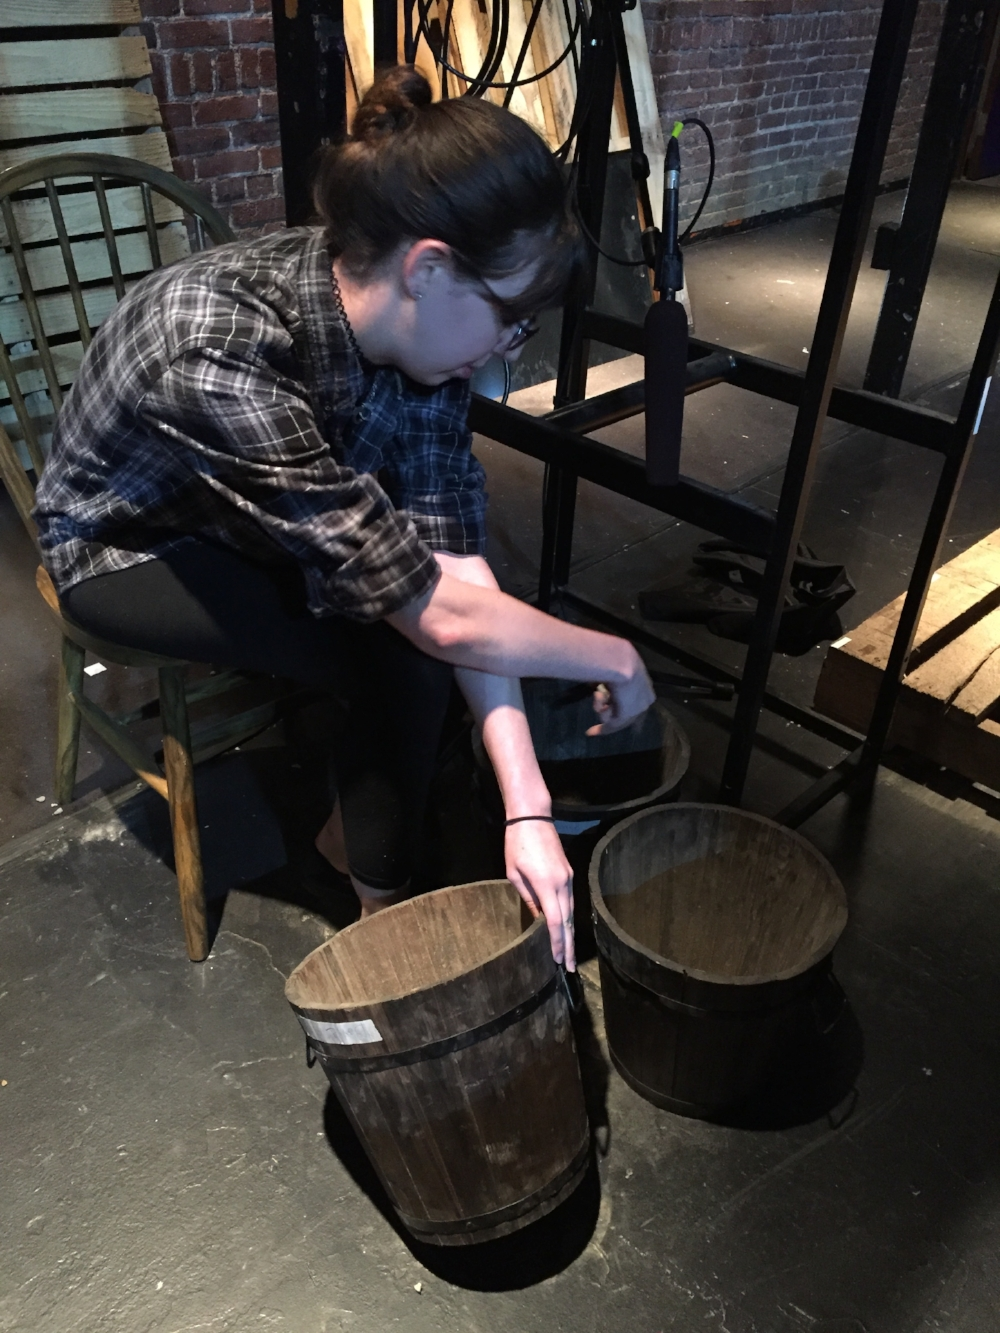 Props assistant Alexis Retcofsky preps rock buckets for the next performance